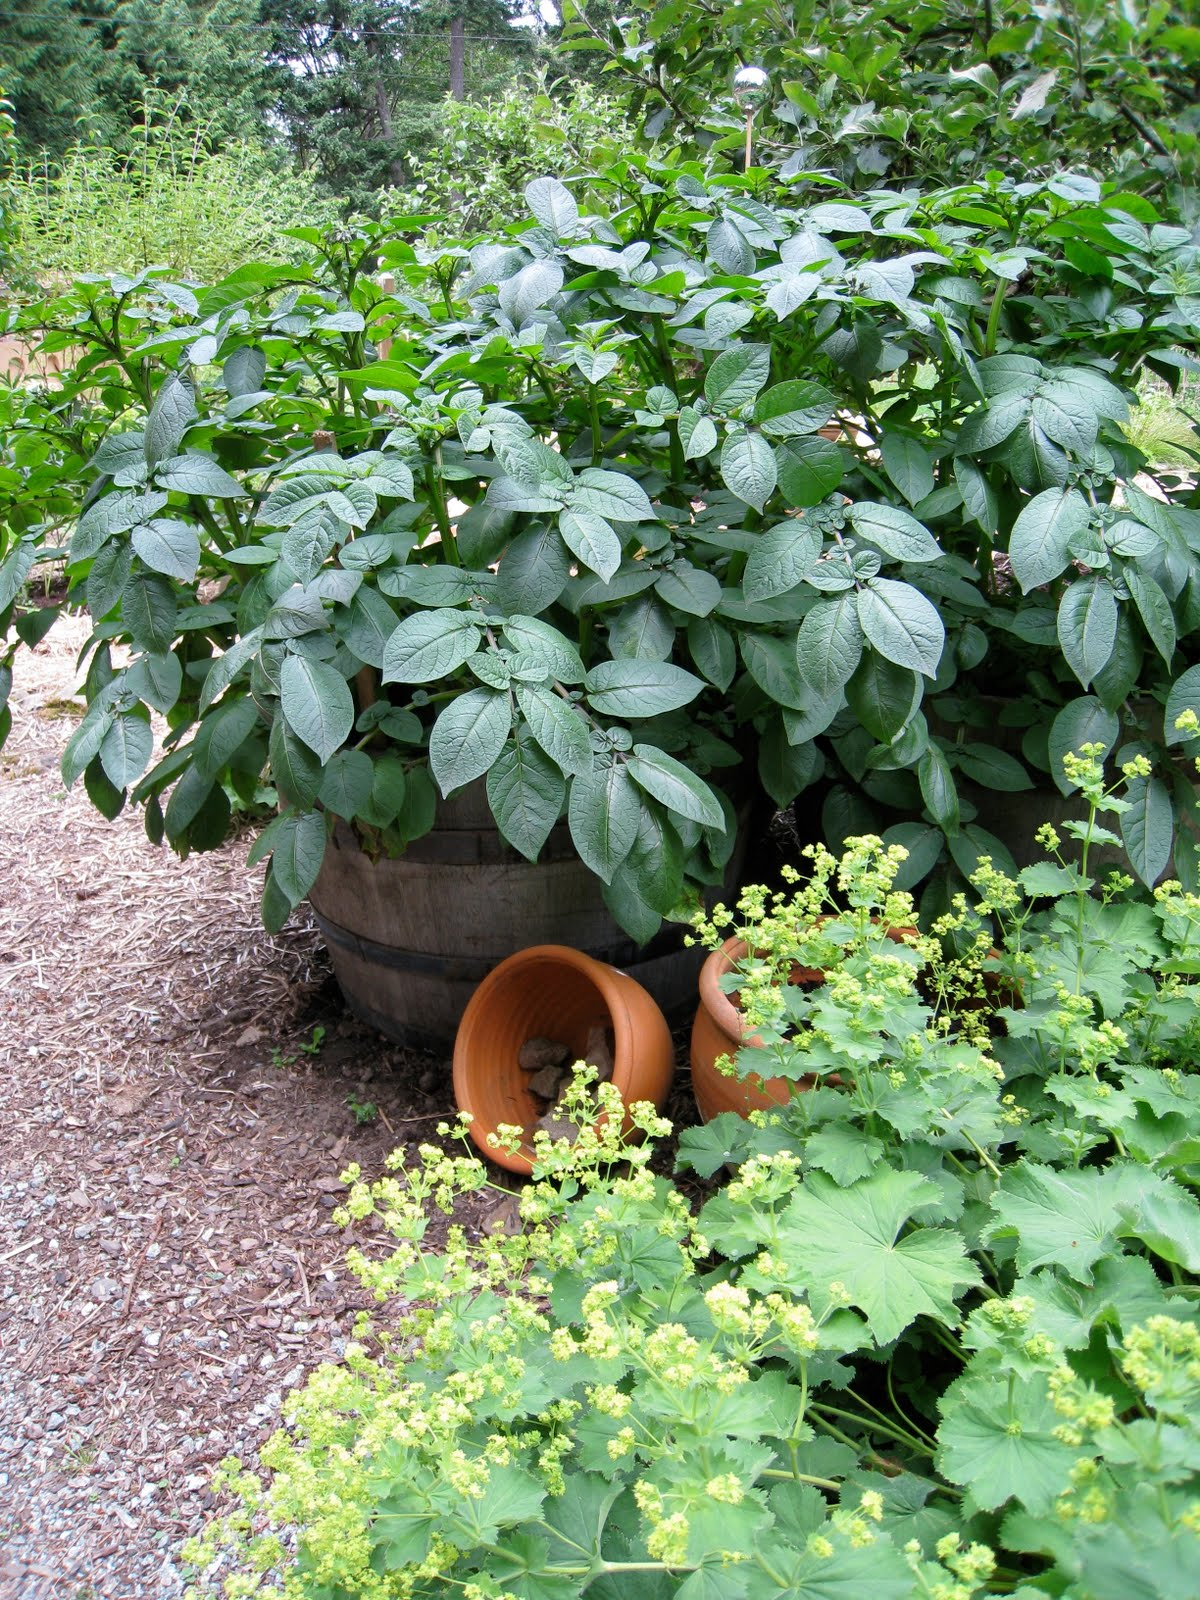 Christina's Garden: potatoes in containers